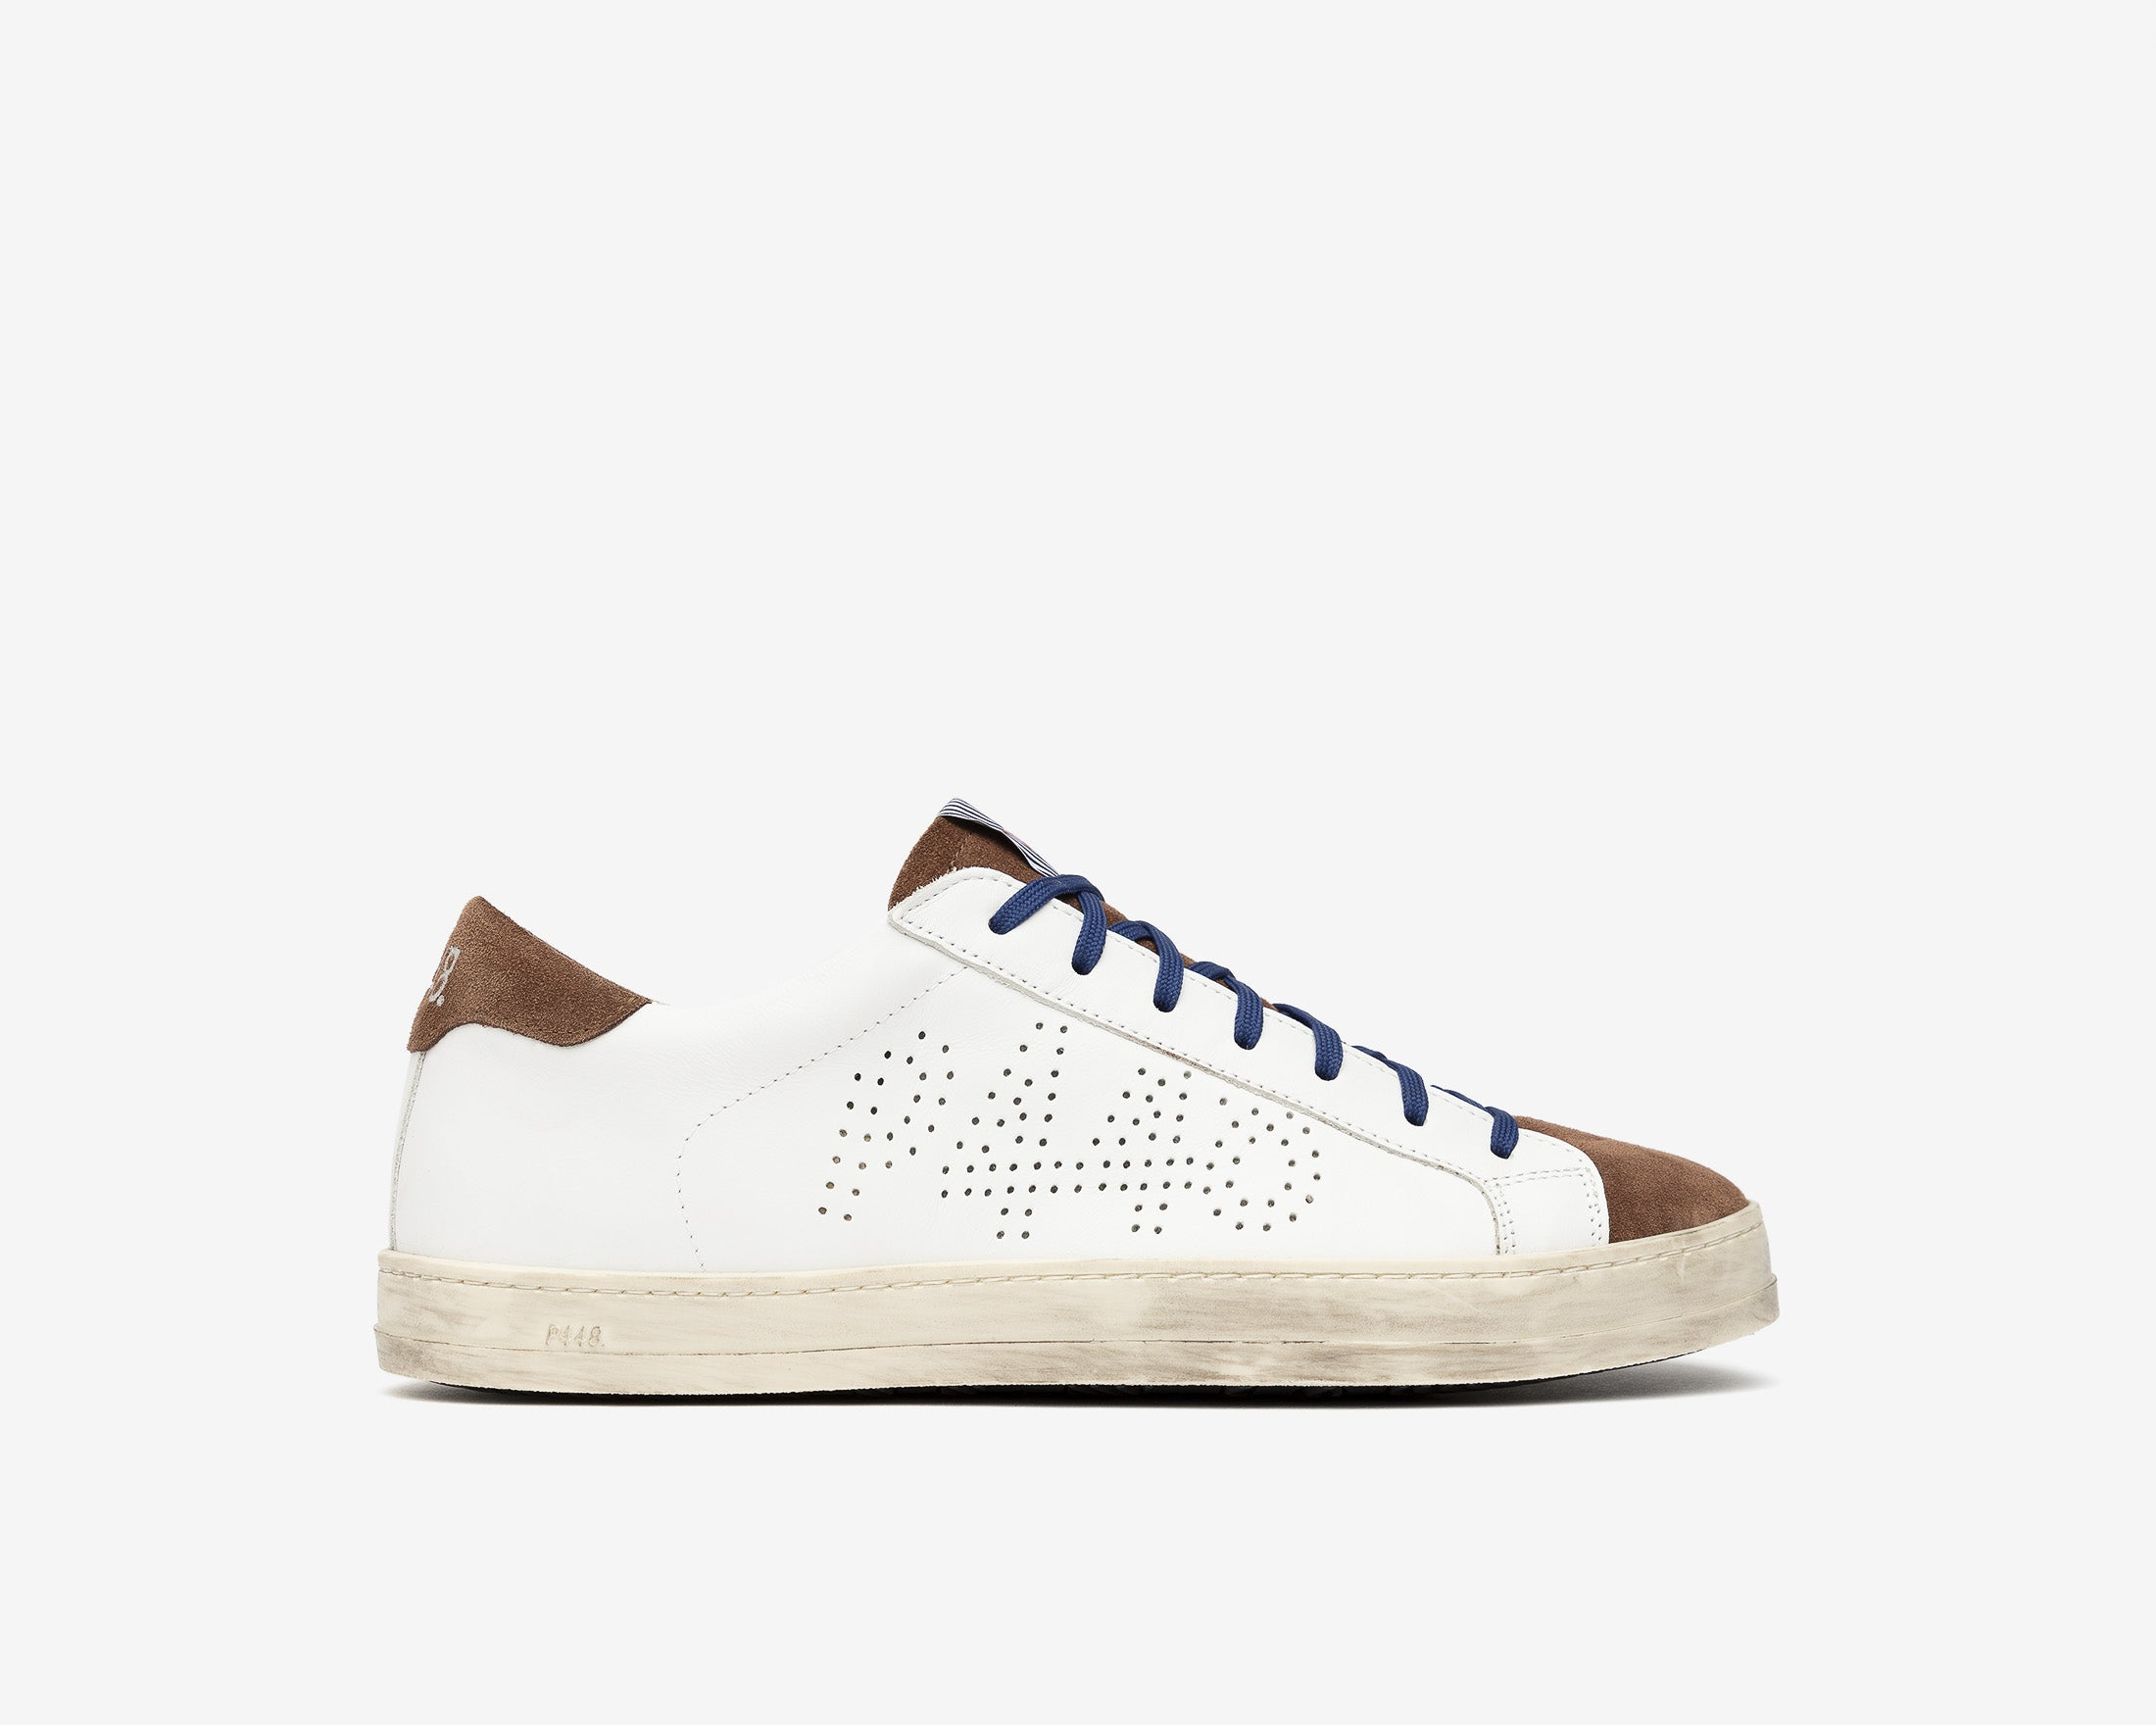 John Low-Top Sneaker in White/Brown - Profile